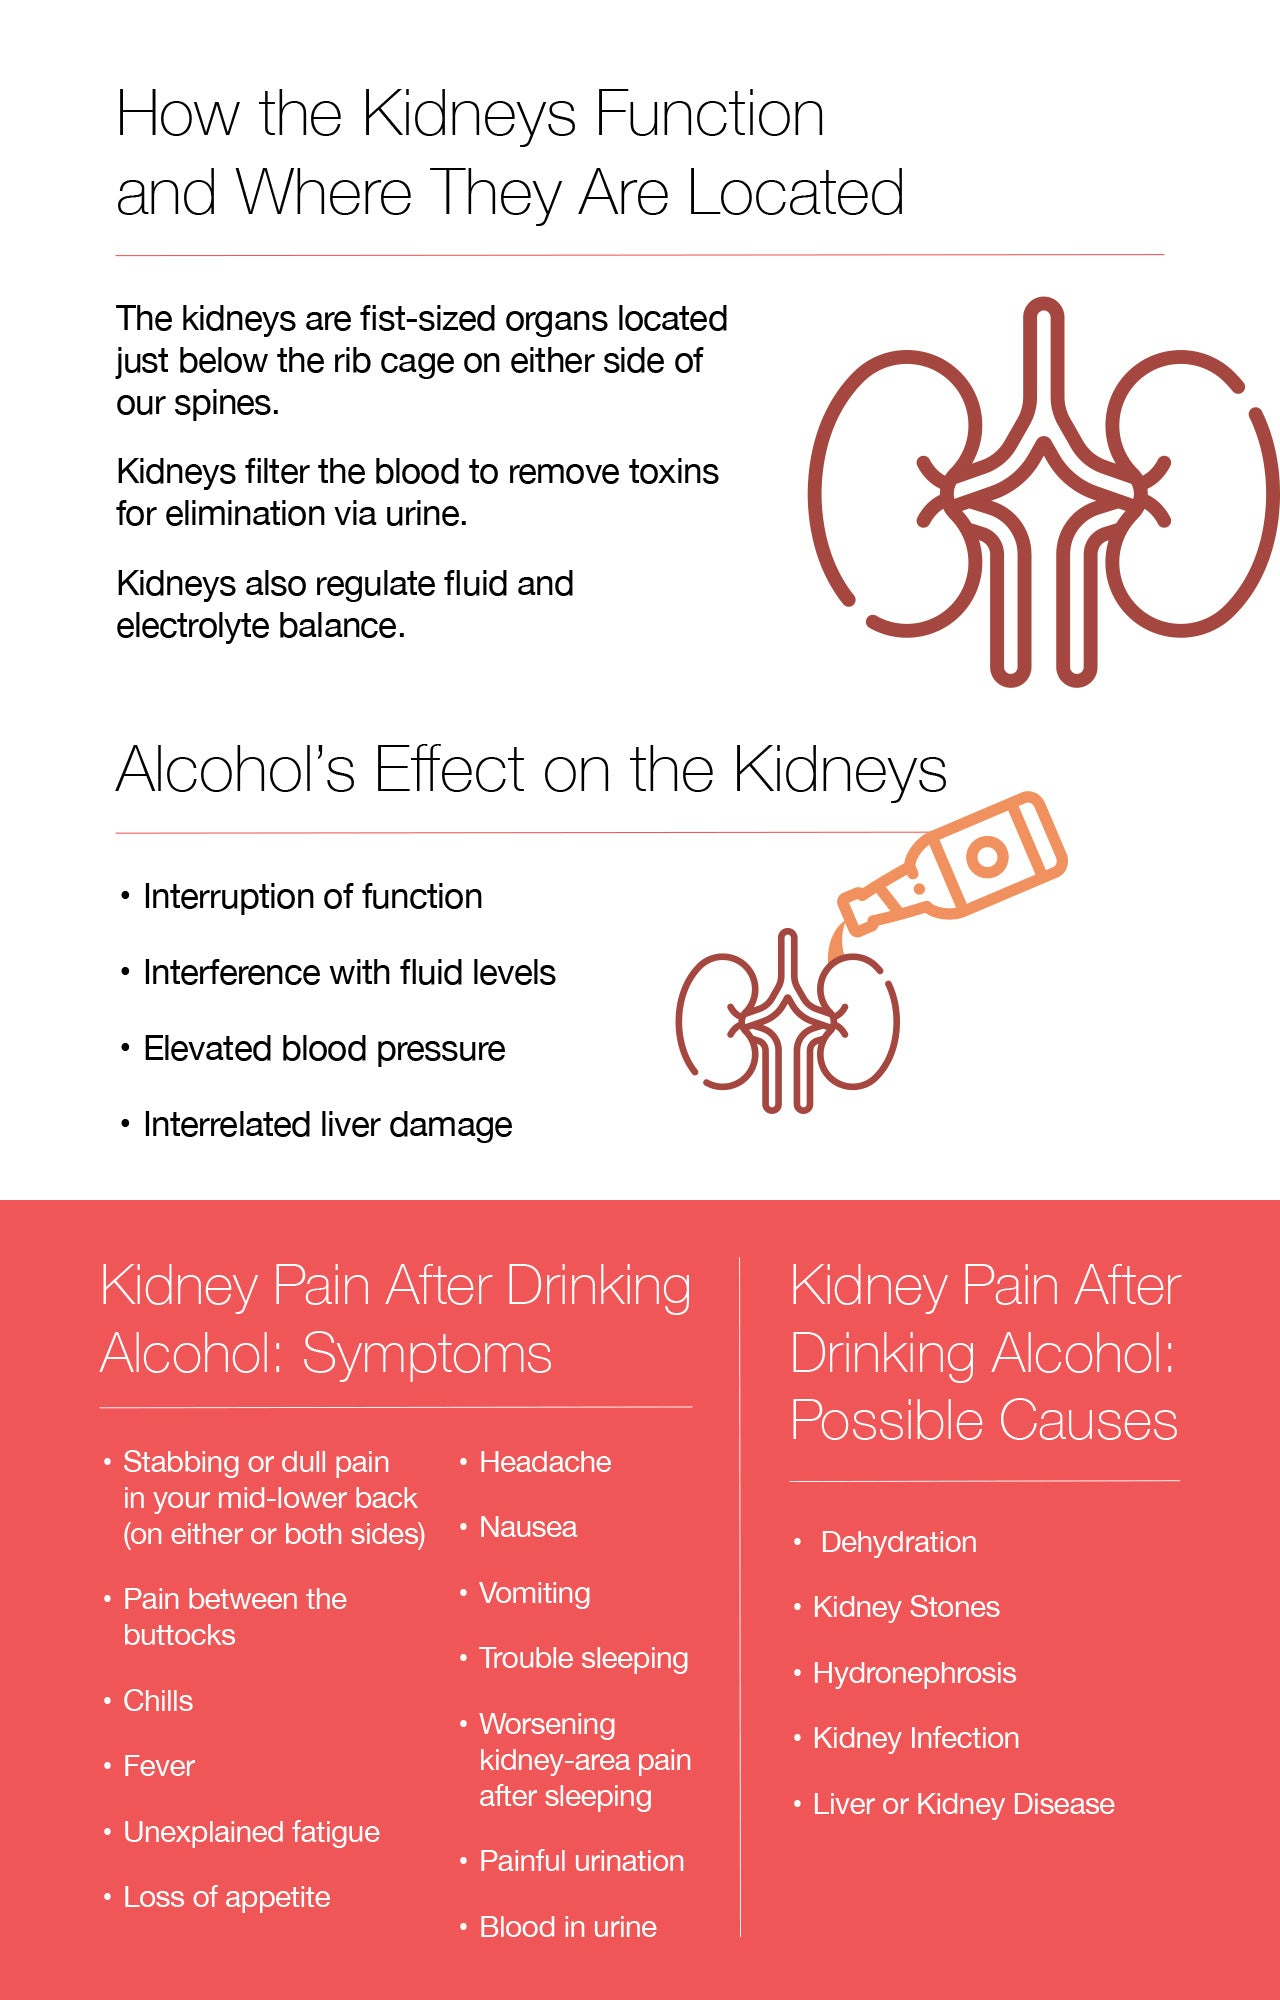 Alcohol's Effect on the Kidneys